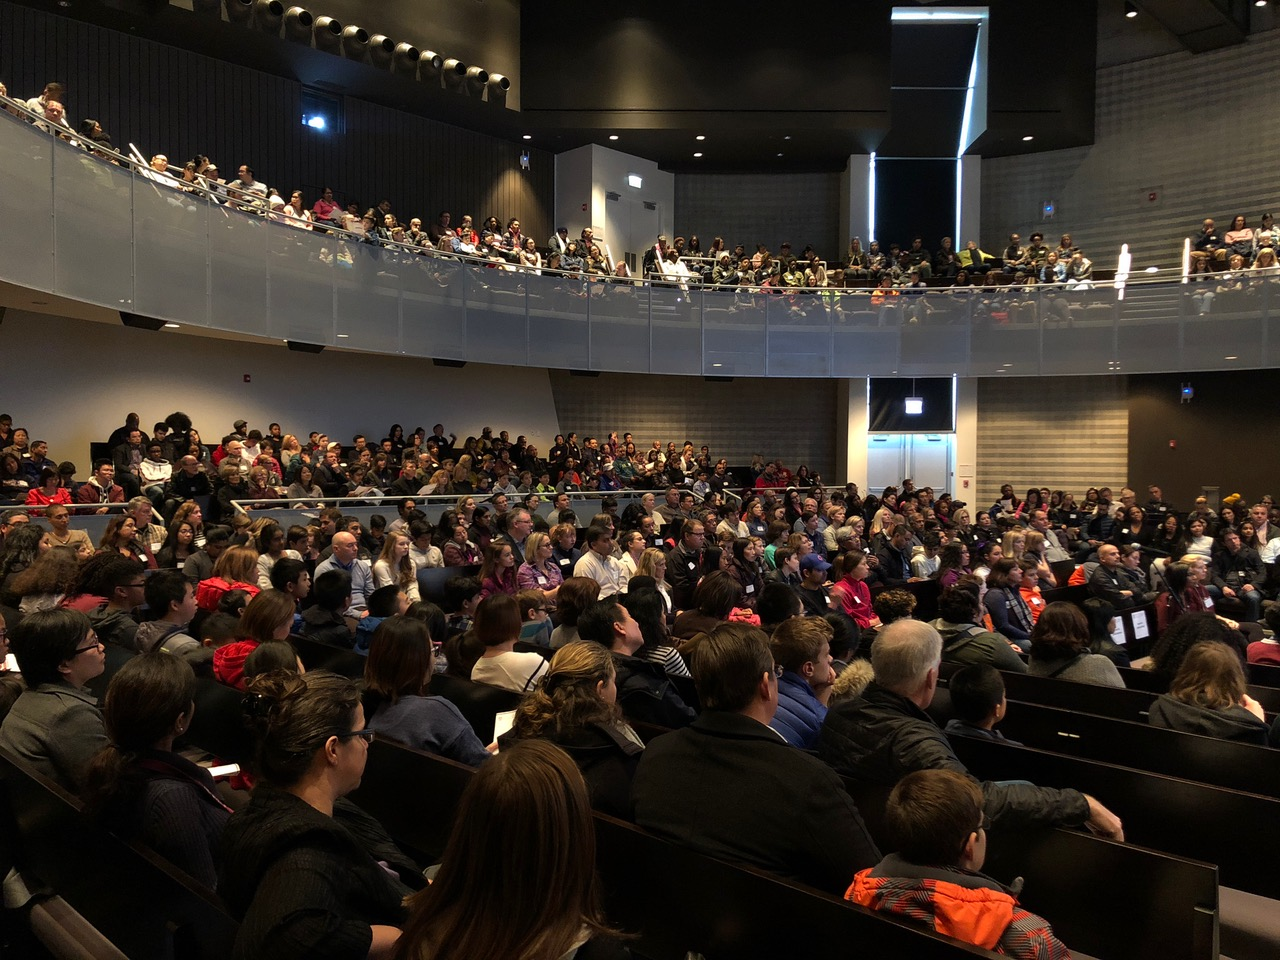 LEARNING ABOUT LAB. Prospective families and students fill the ground floor and most of the balcony in the Gordon Parks Assembly Hall during the Admissions Open House Oct. 27. They listened to presentations about Lab's curriculum and its resources for students.